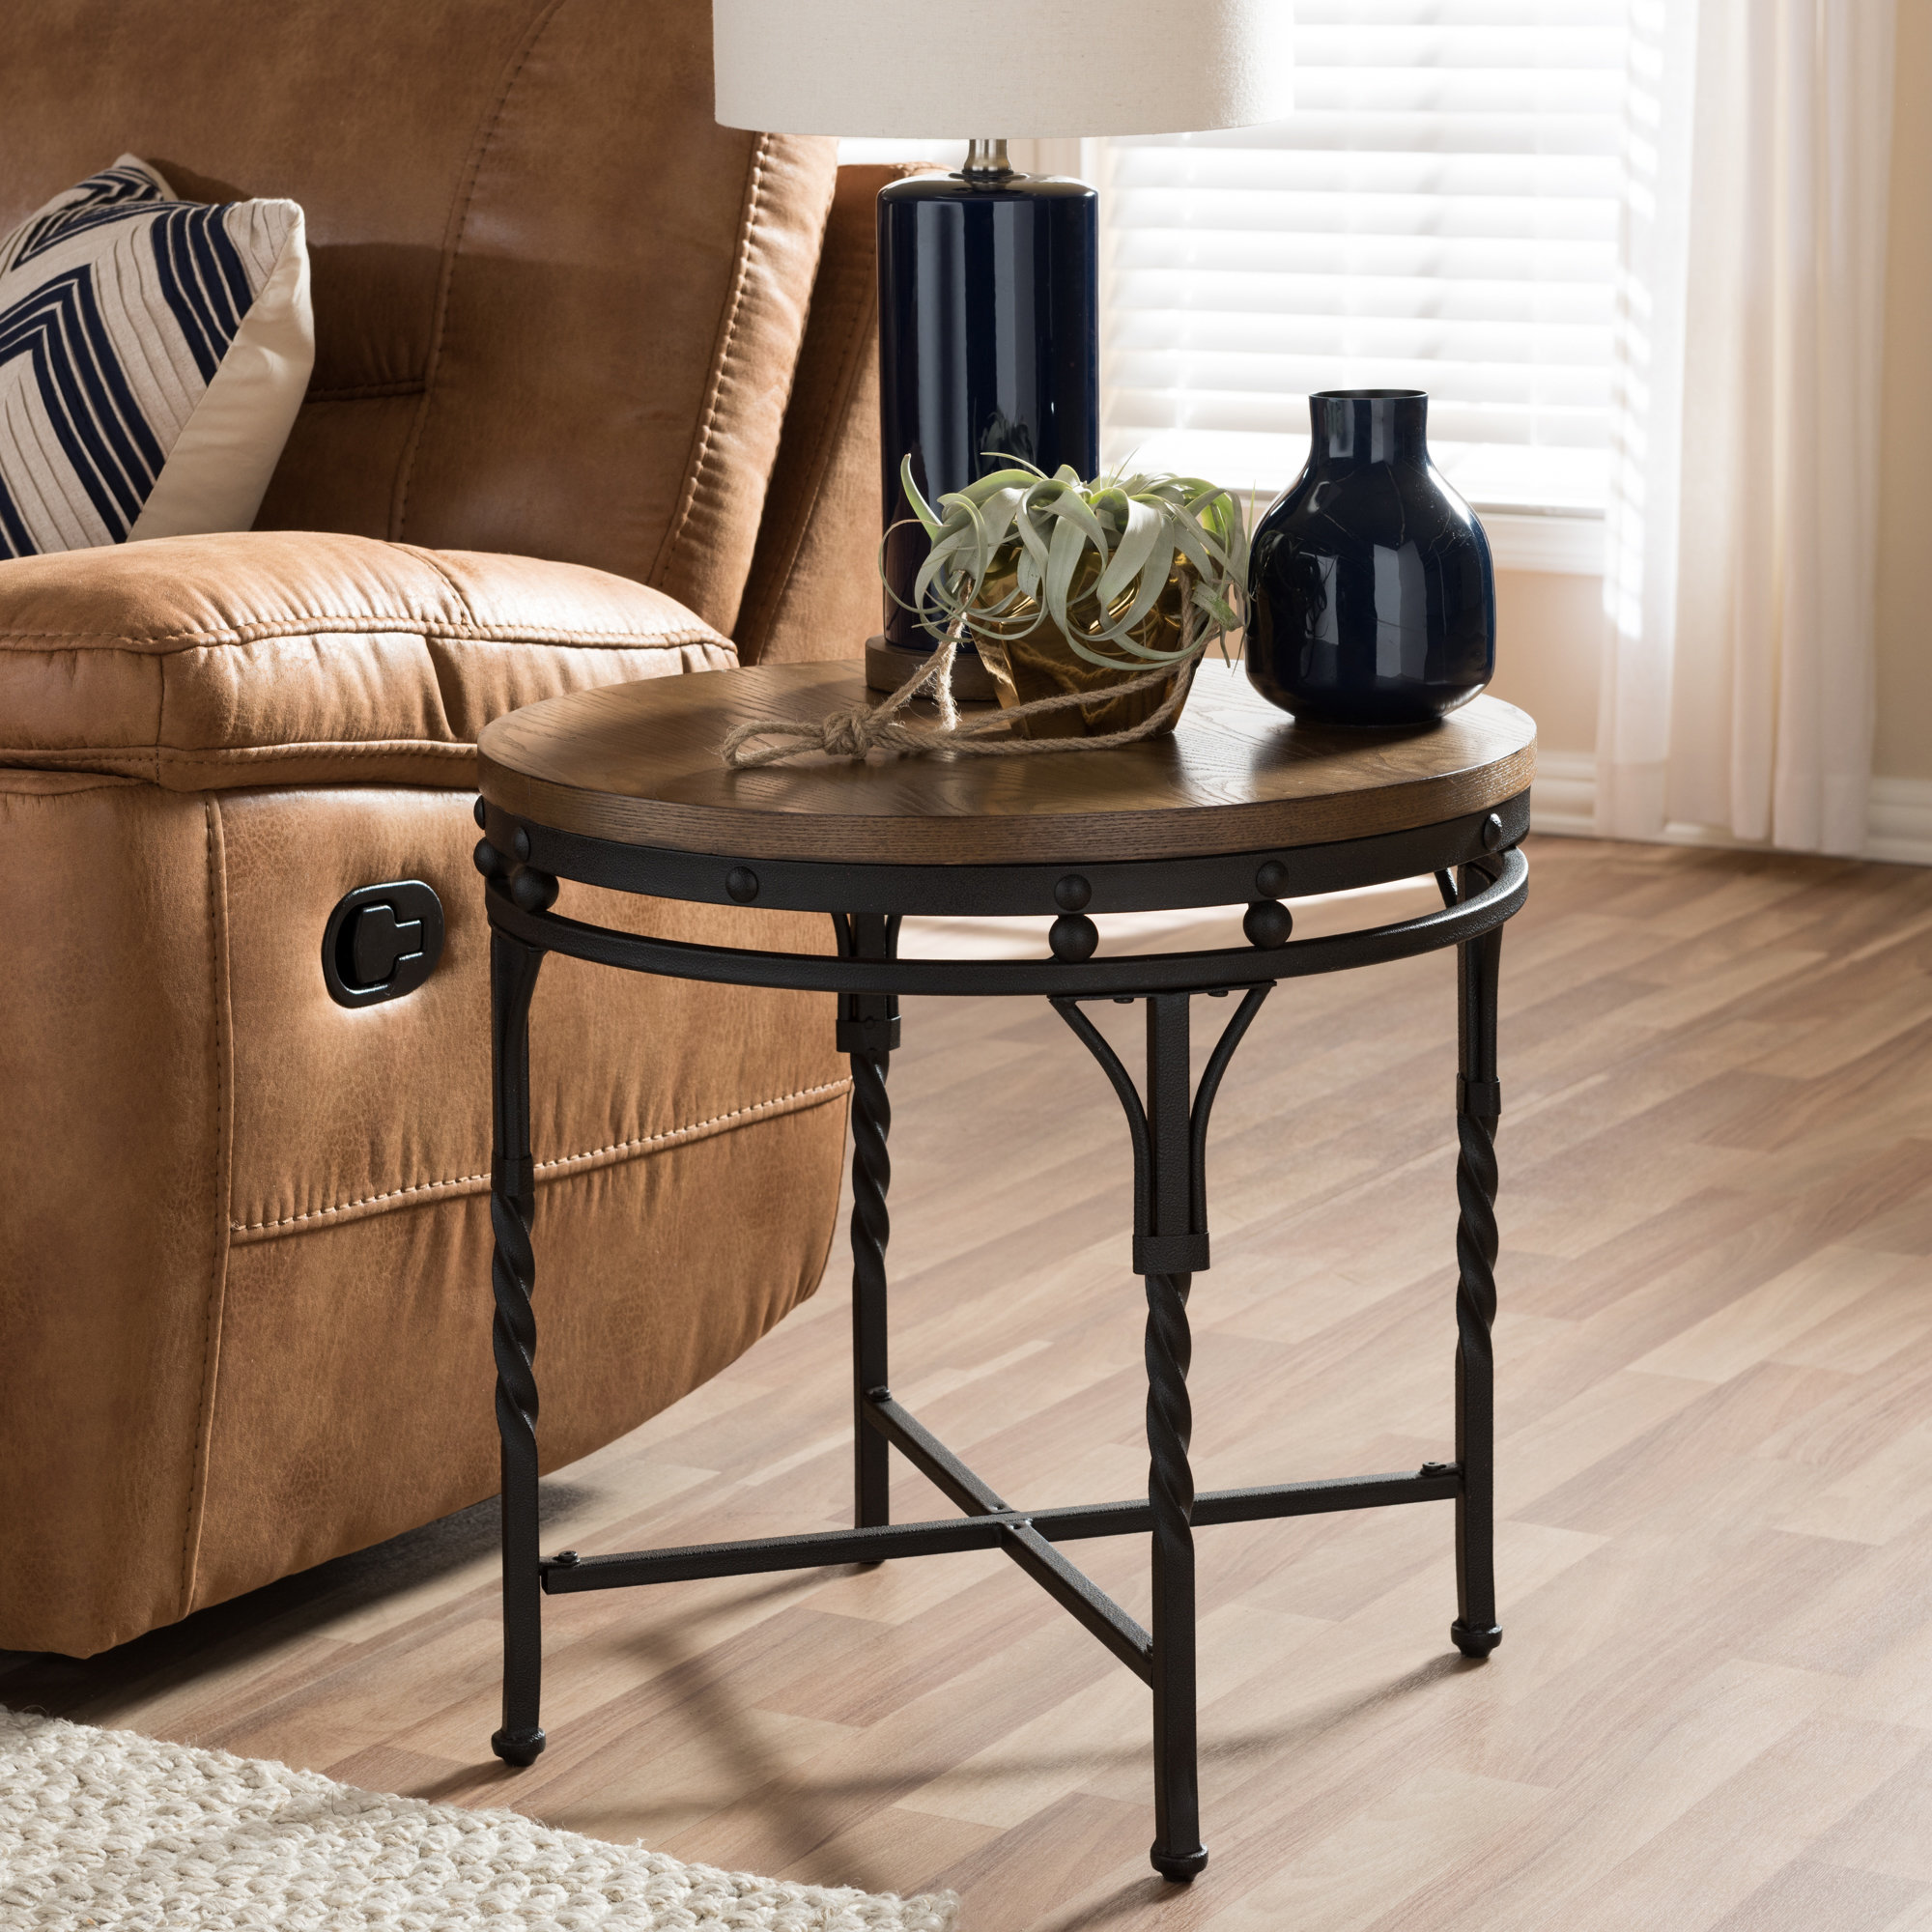 wadsworth end table reviews birch lane acacia wood accent knotty pine bedroom furniture round tablecloth sizes oak chairside tables gray outdoor side antique wall clocks coffee